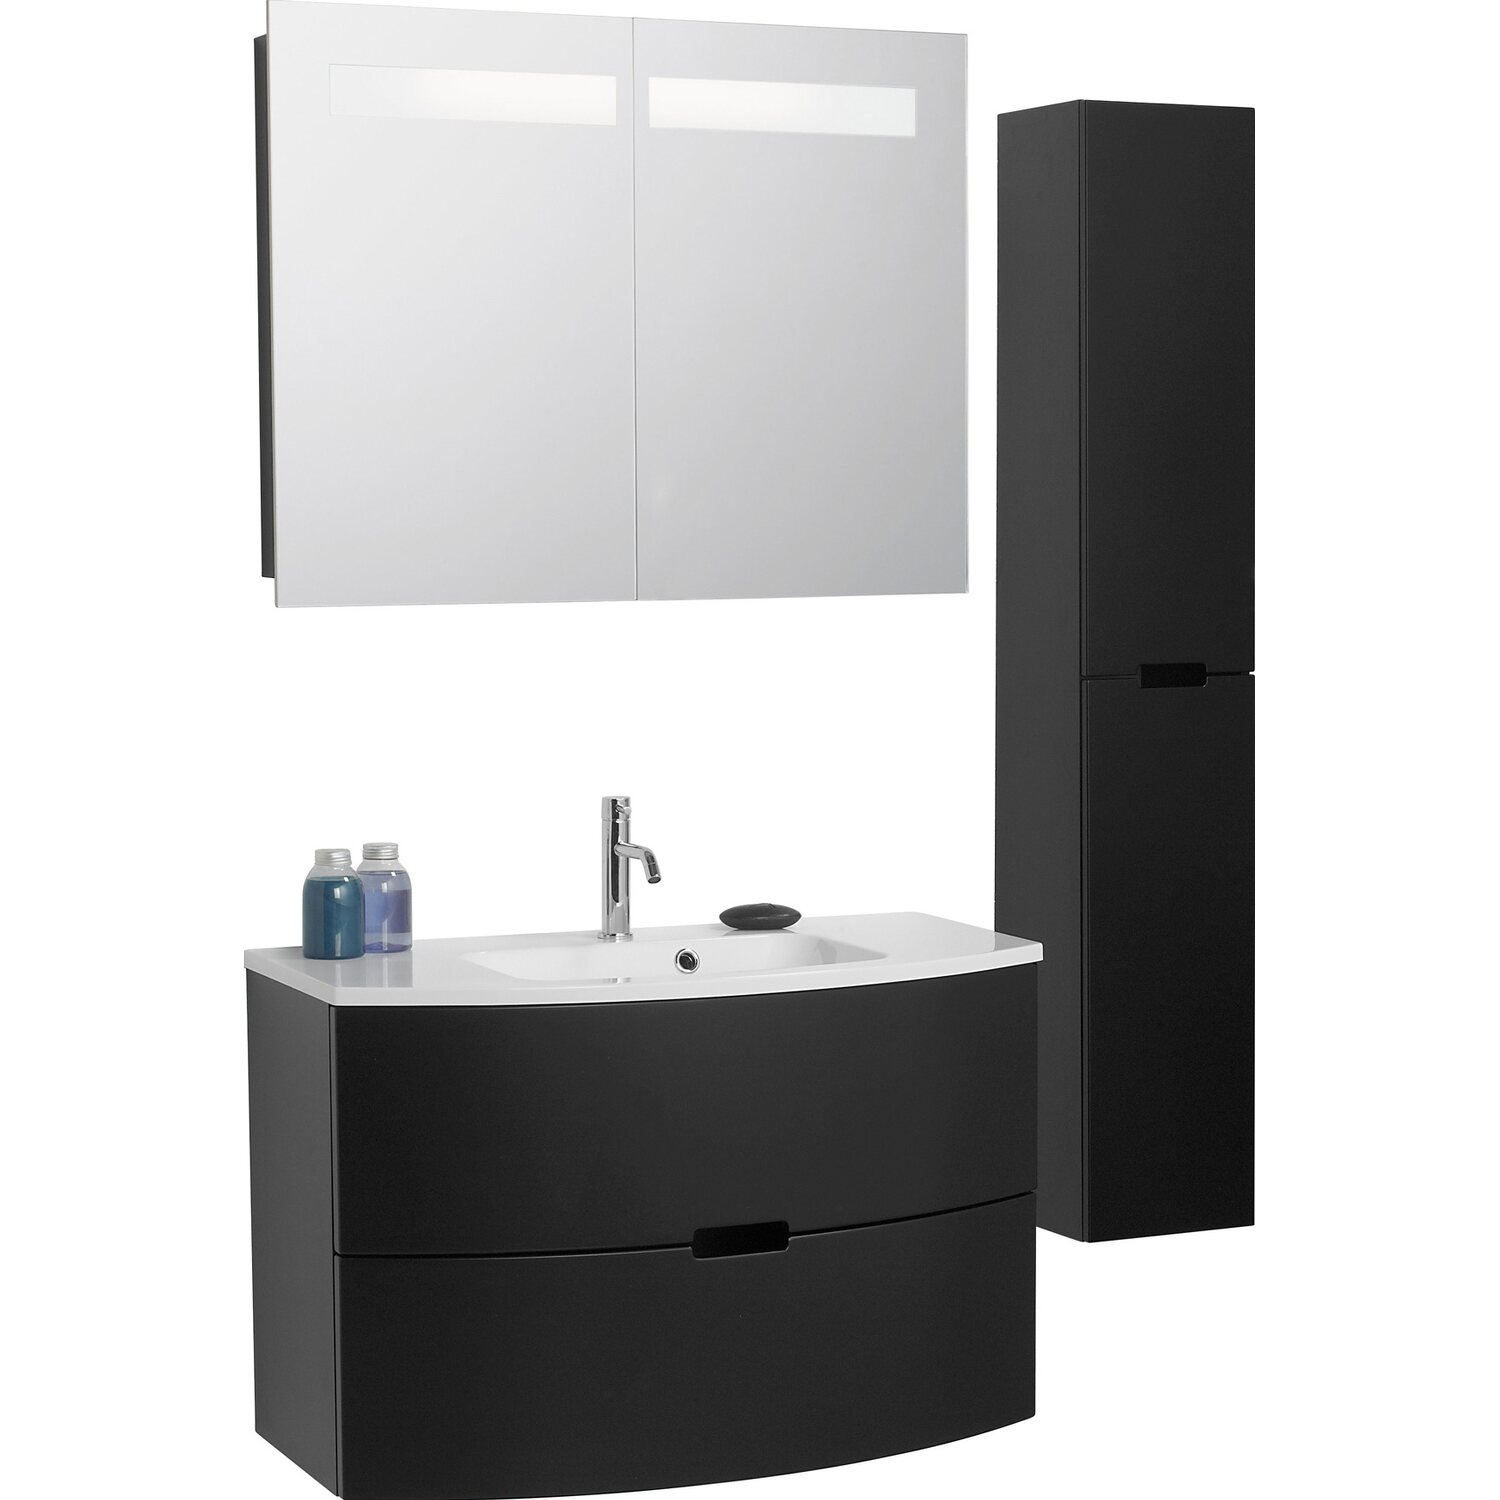 scanbad badm bel set 90 cm mit spiegelschrank modern. Black Bedroom Furniture Sets. Home Design Ideas